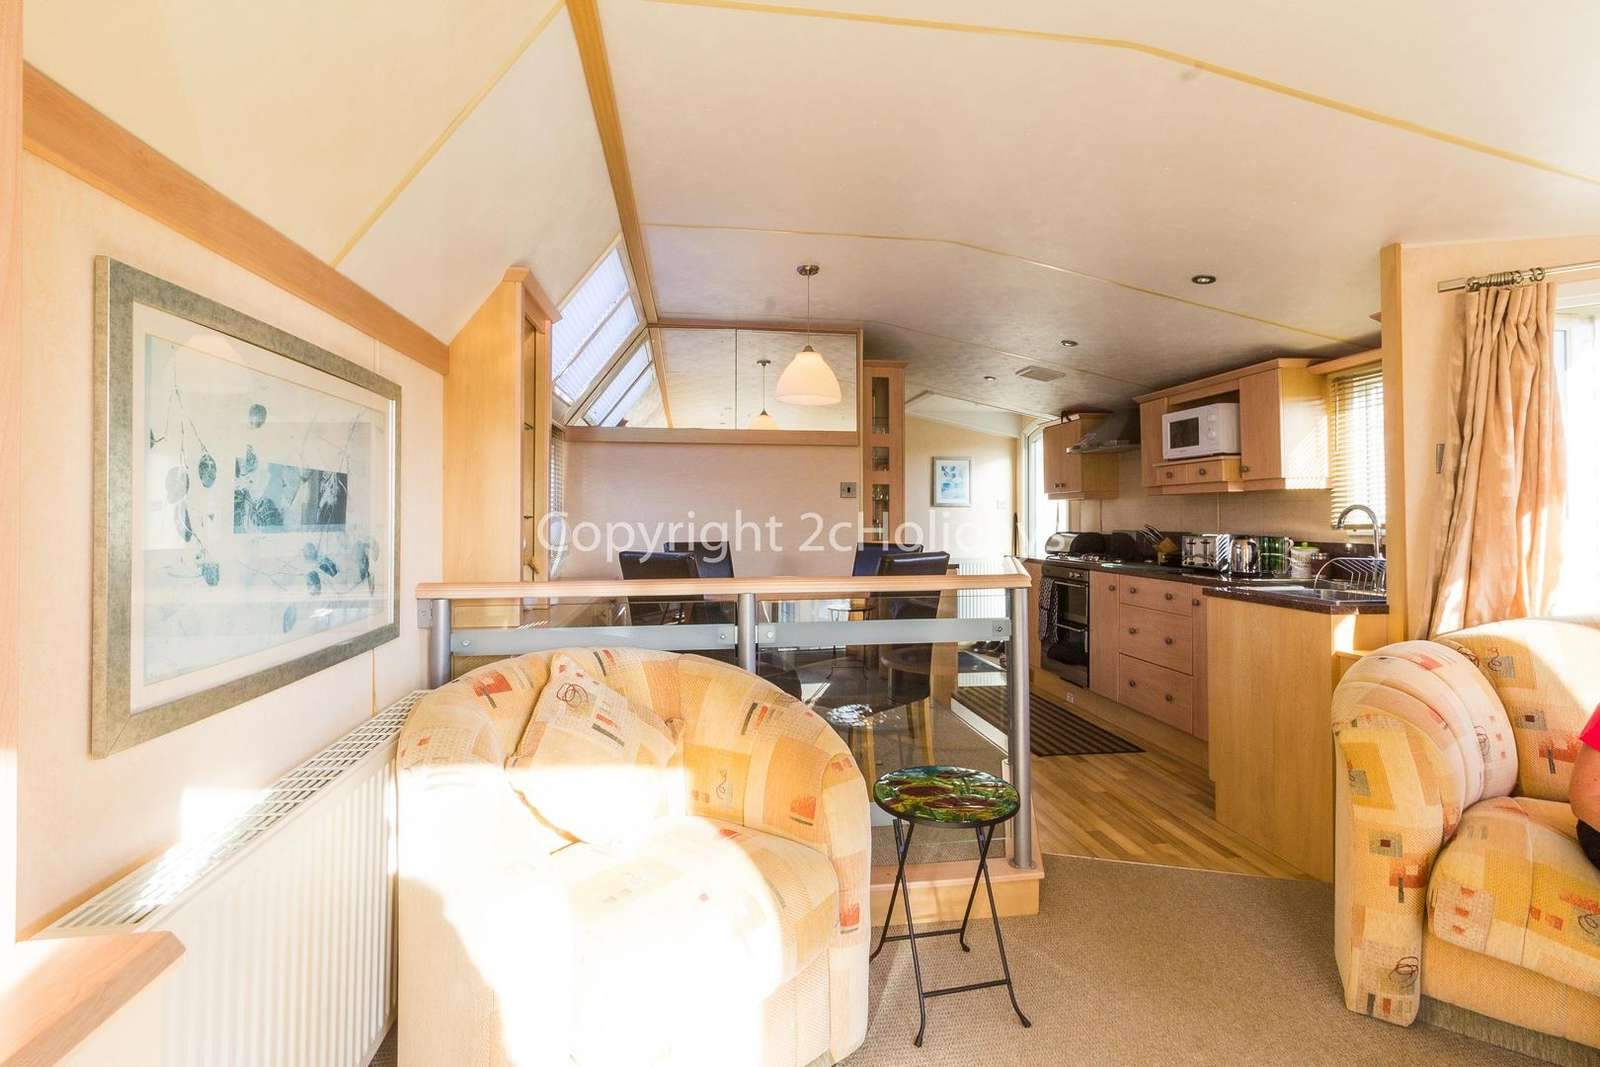 Spacious and open plan living/dining area leading to the kitchen